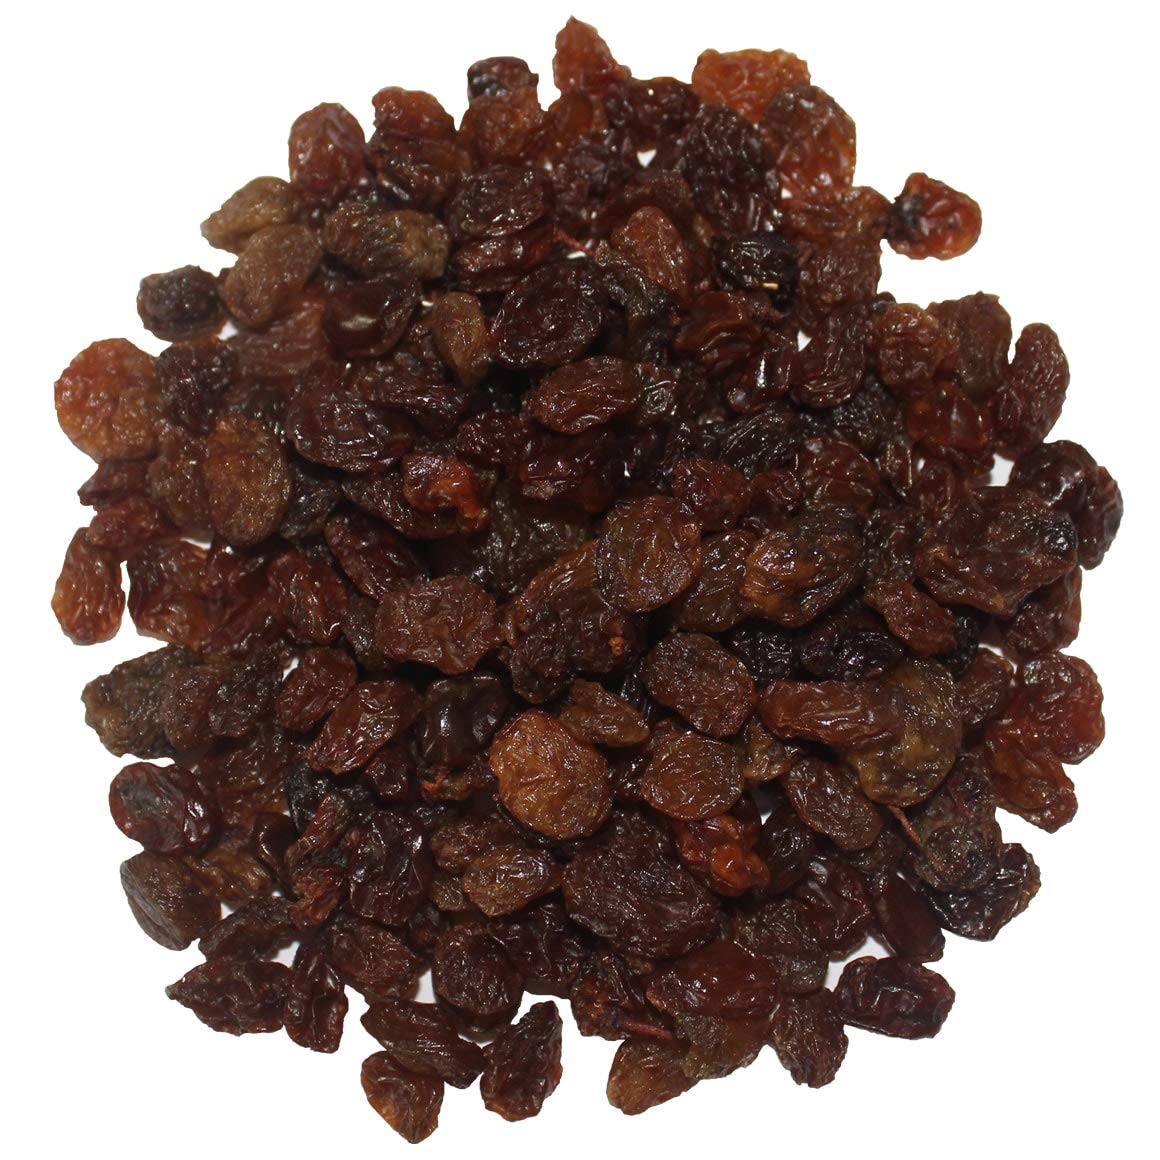 Turkish Organic Raisins, 27.5 Pounds - Sun Dried Thompson Seedless Select Sultana Grapes, Non-GMO, Raw, No Sugar added, Kosher, Vegan, Lightly Coated with Organic Sunflower Oil by Food to Live